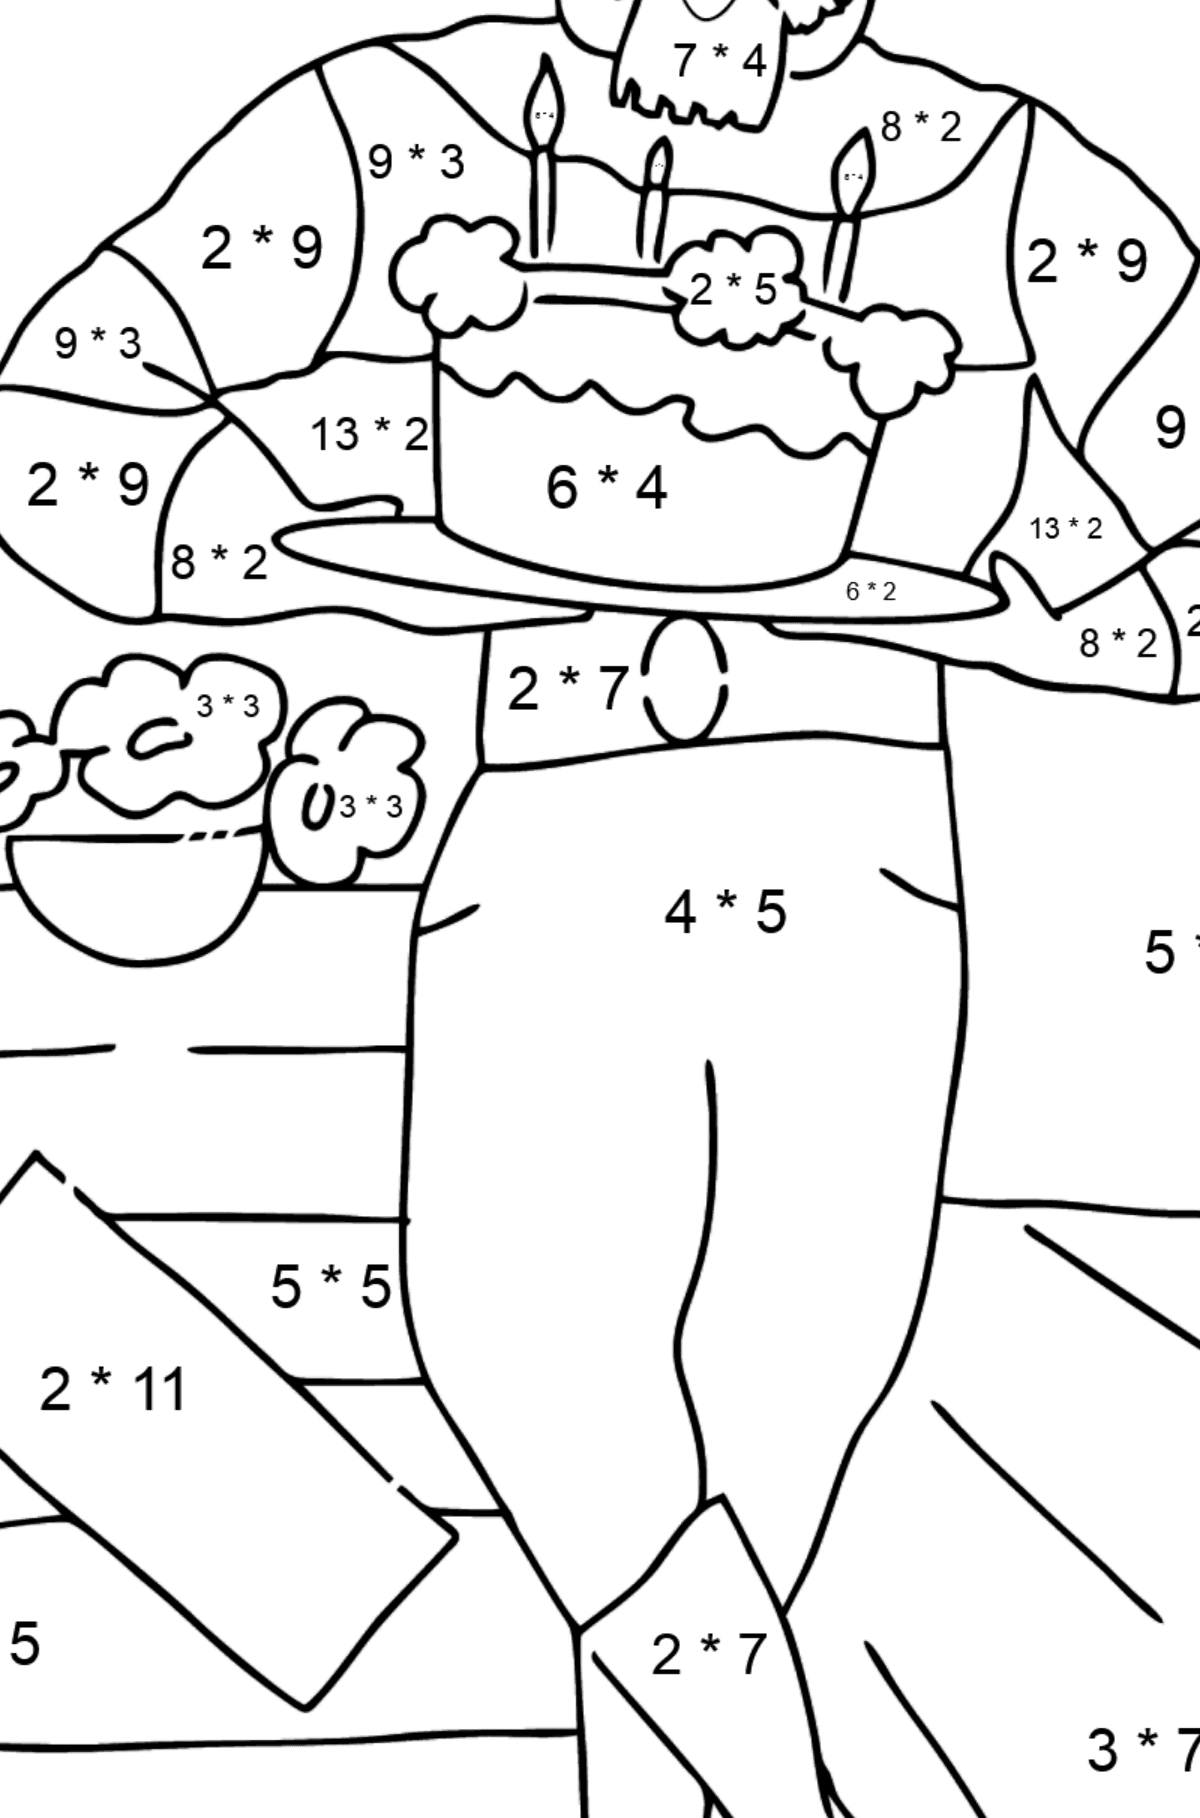 Coloring Page - A Pirate is Waiting for Guests - Math Coloring - Multiplication for Kids